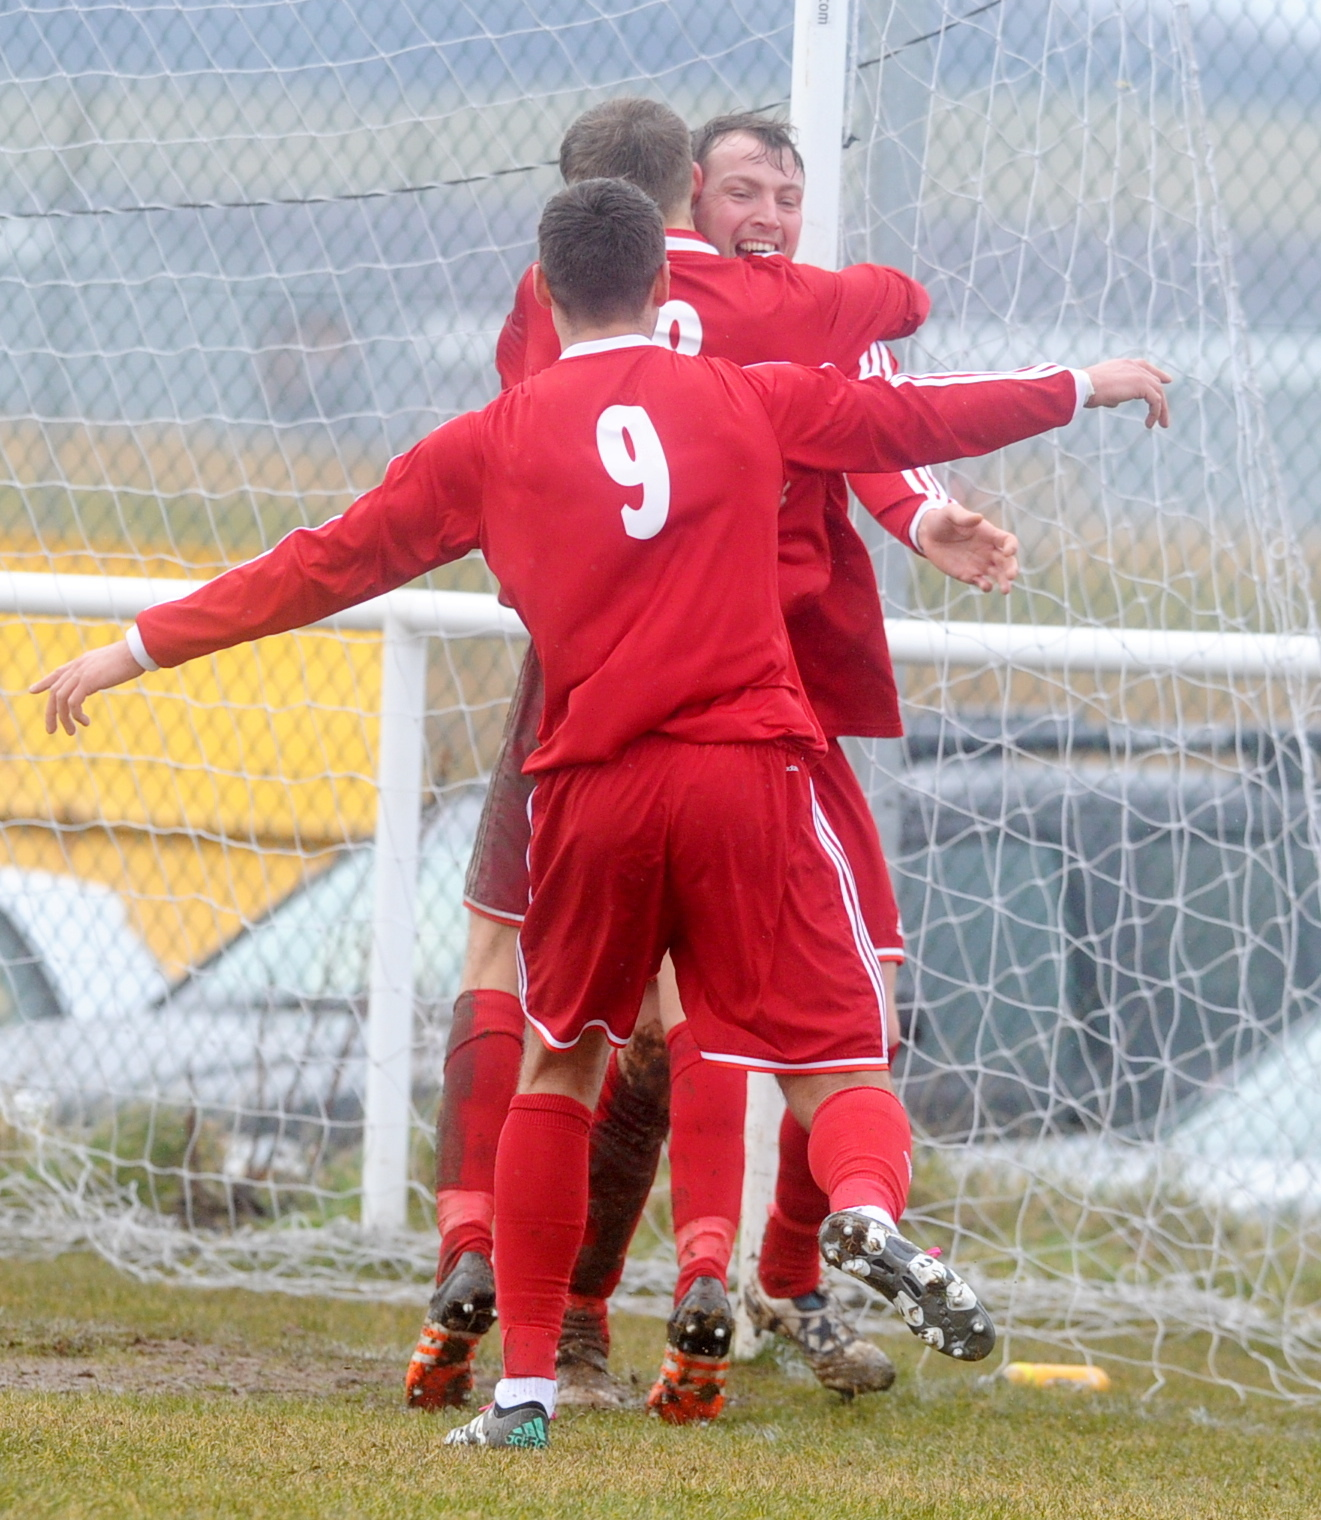 FC Stoneywood's Liam Bain is congratulated after scoring his side's first goal.